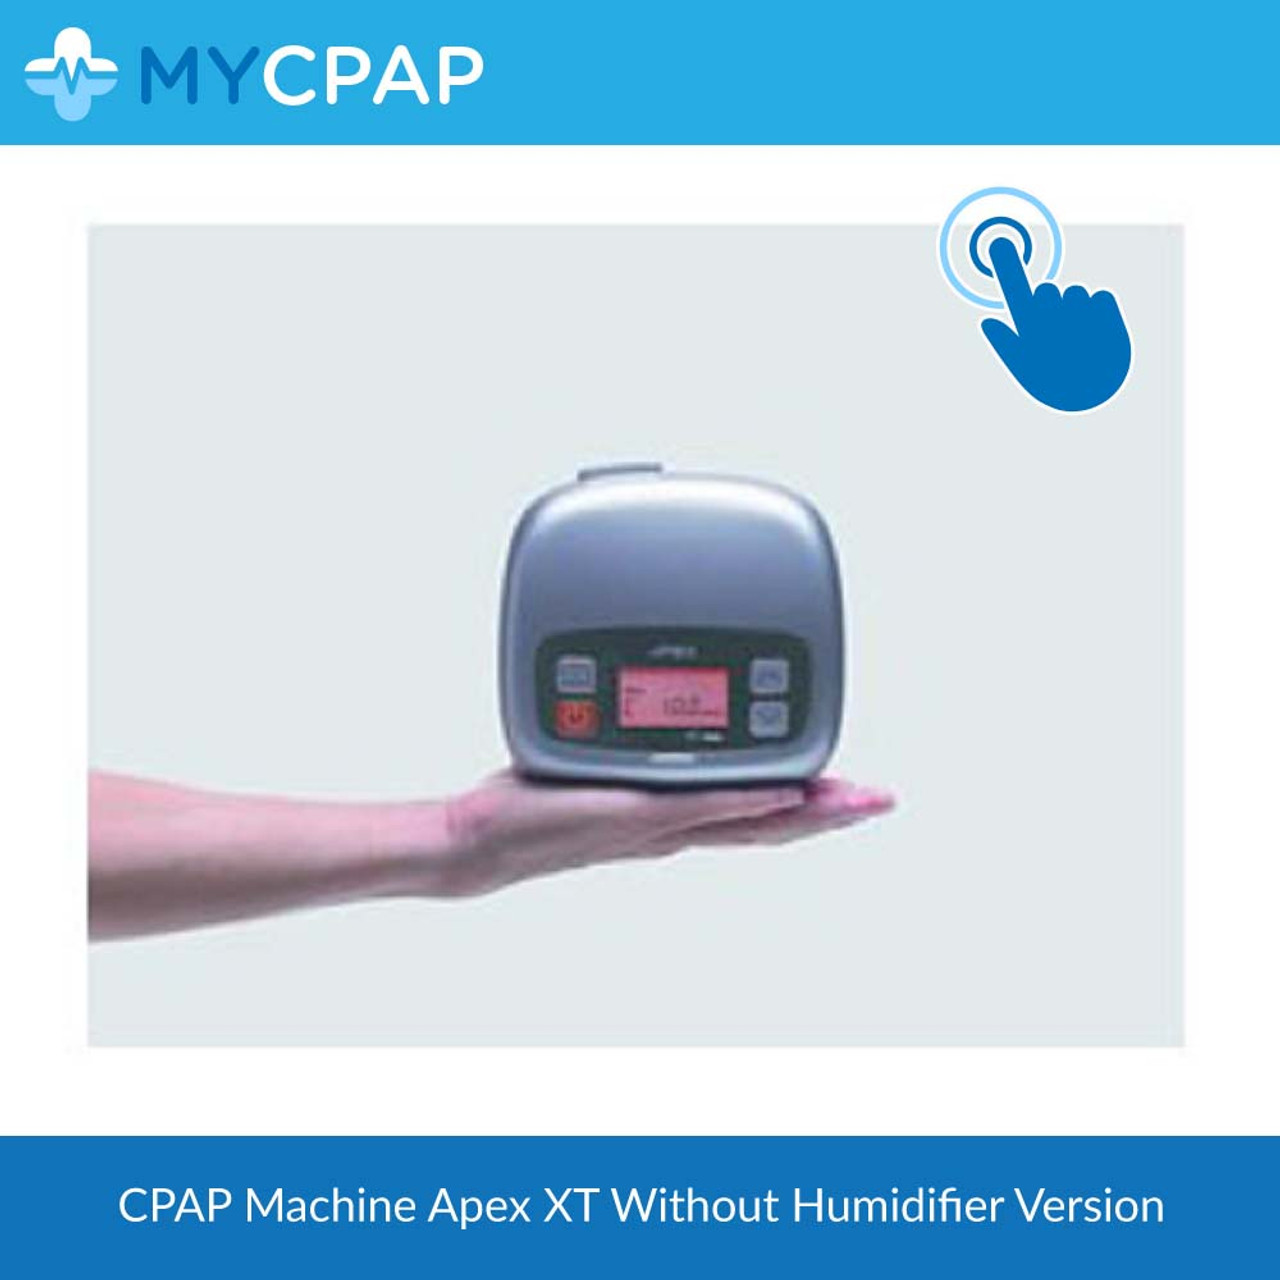 Apex XT CPAP Machine (without humidifier)